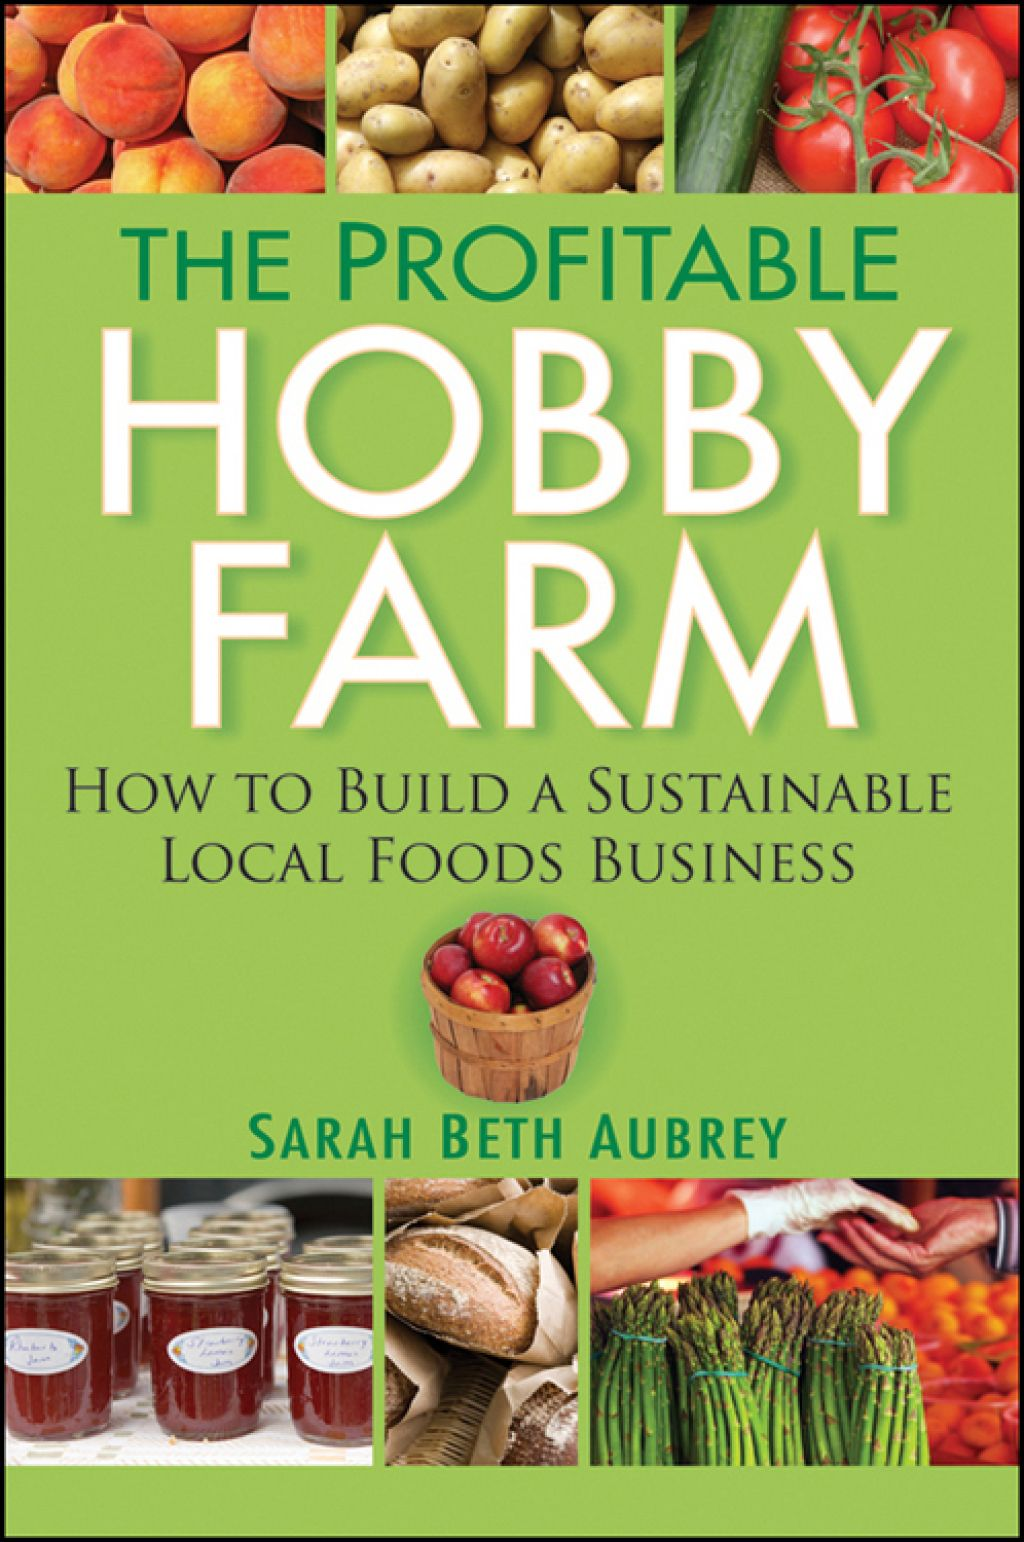 The Profitable Hobby Farm How to Build a Sustainable Local